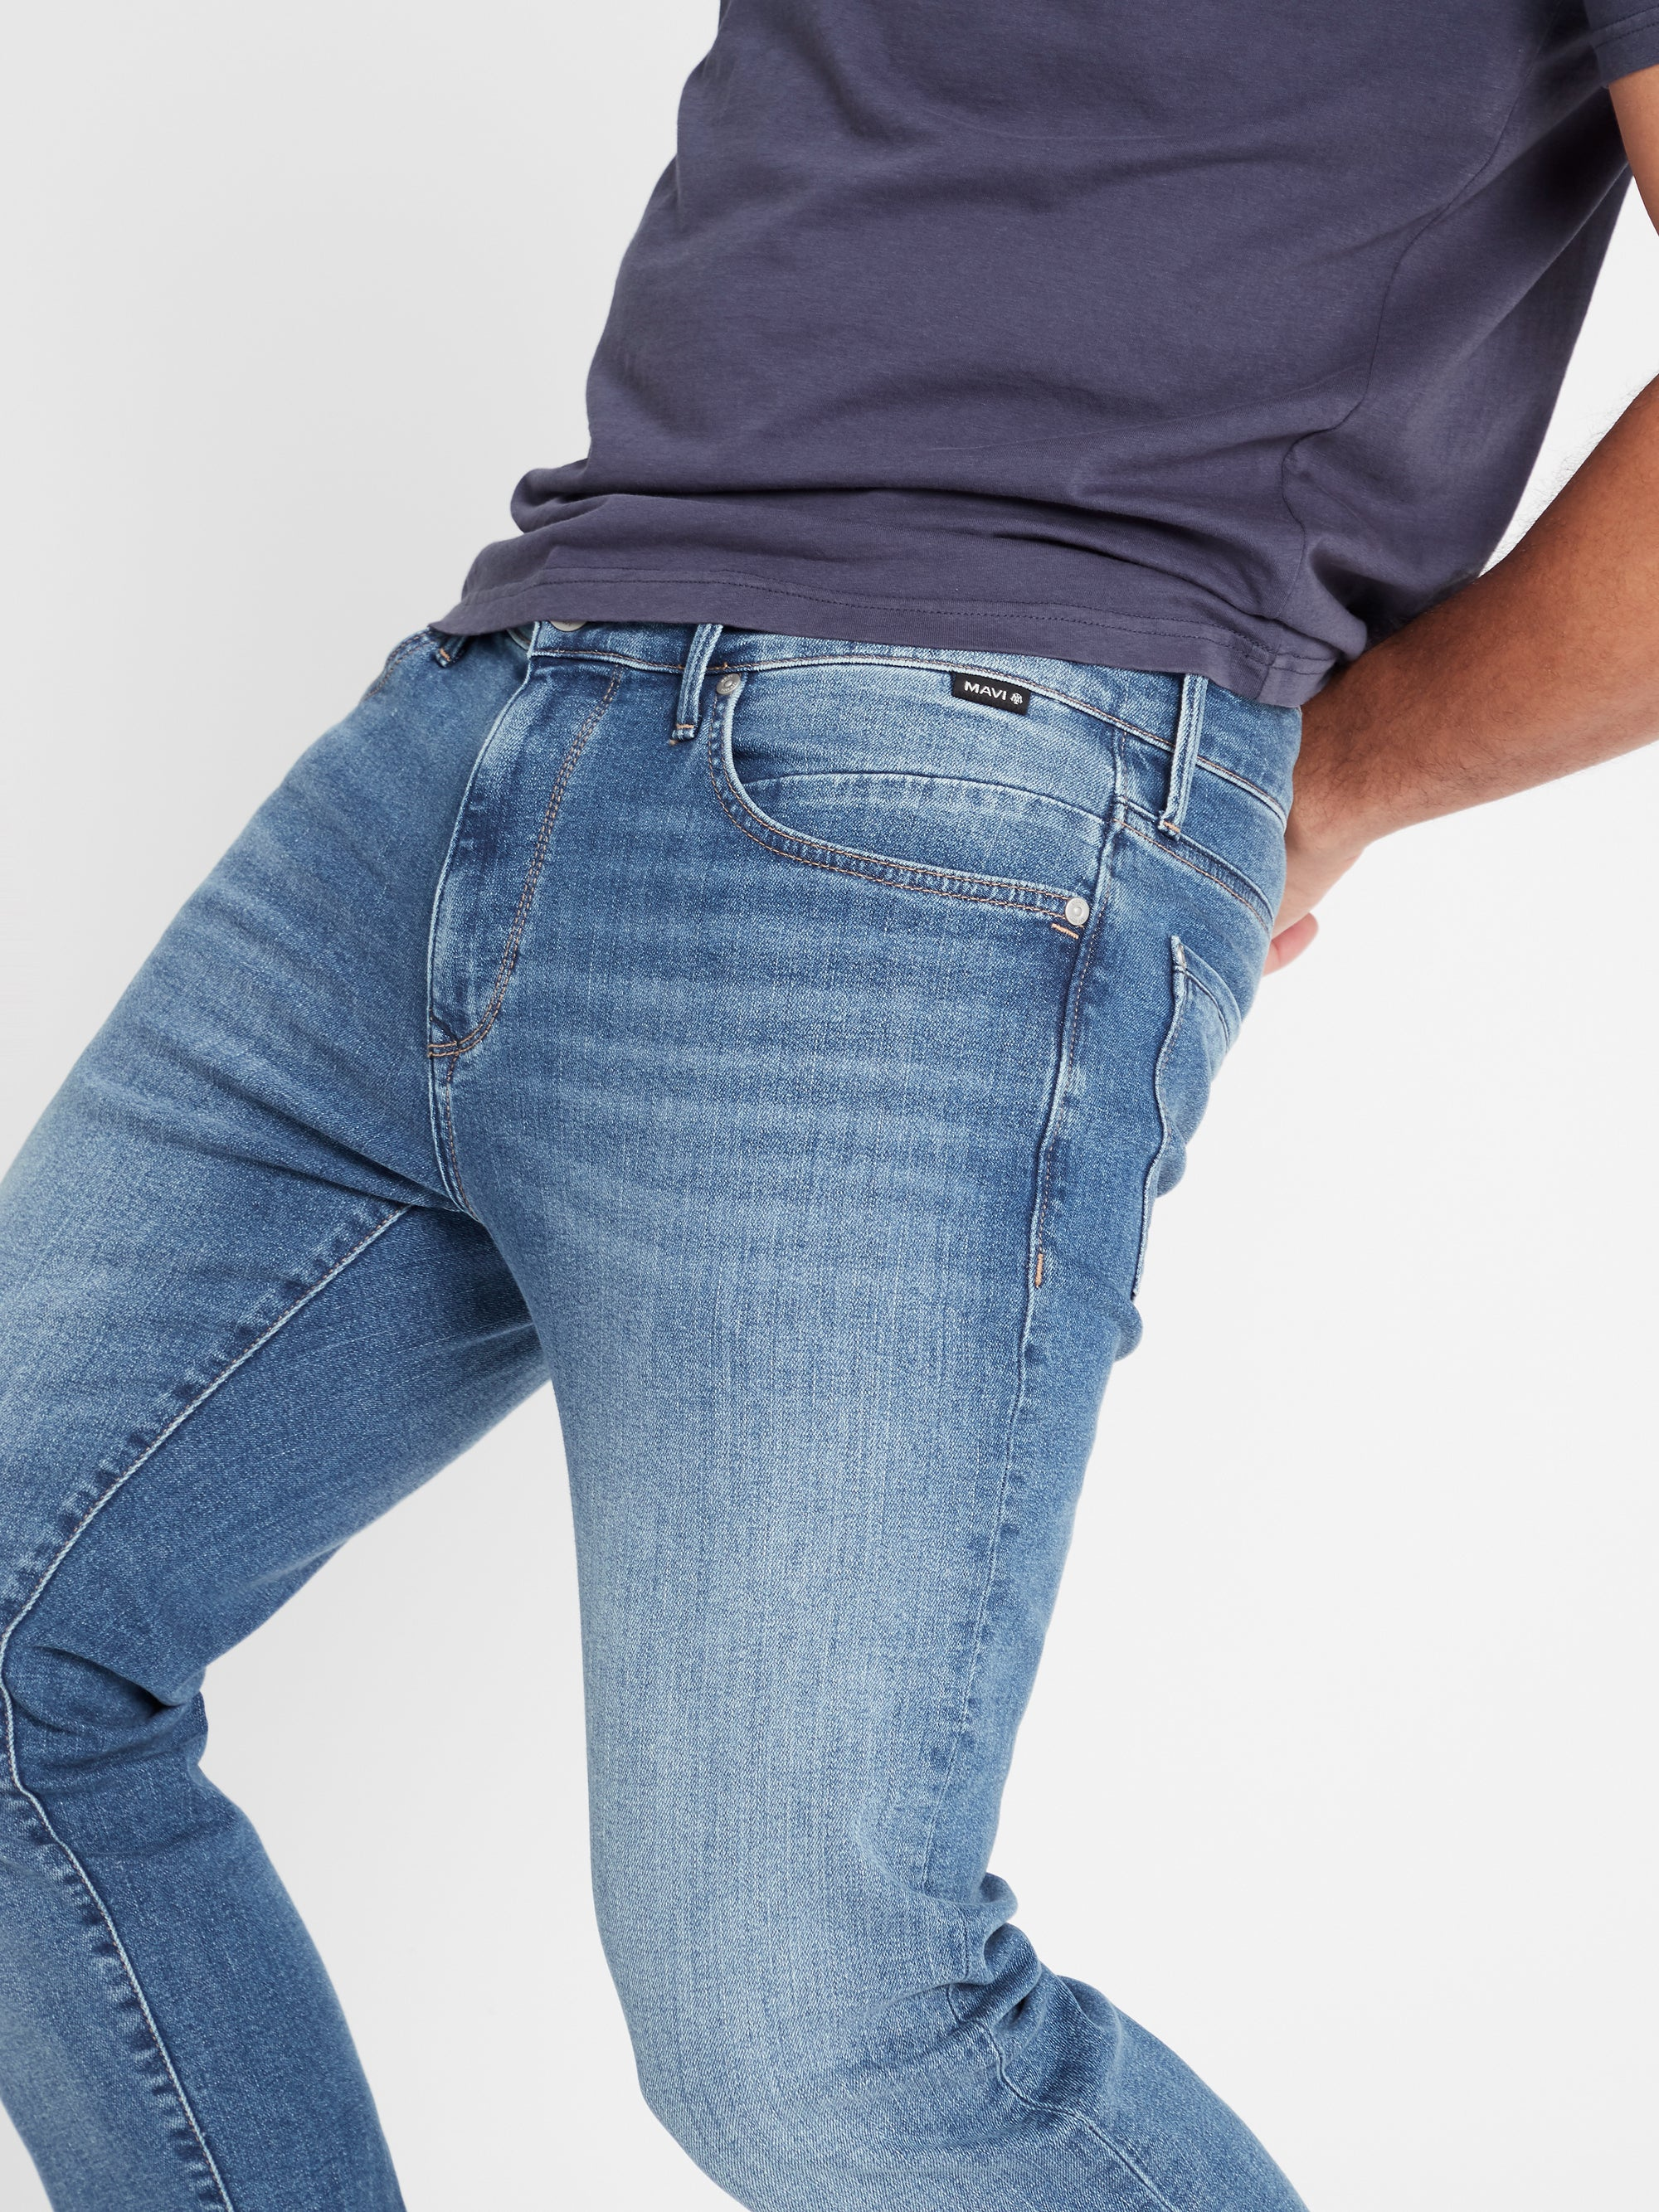 Marcus Slim Straight Jeans in Light Indigo Mavi